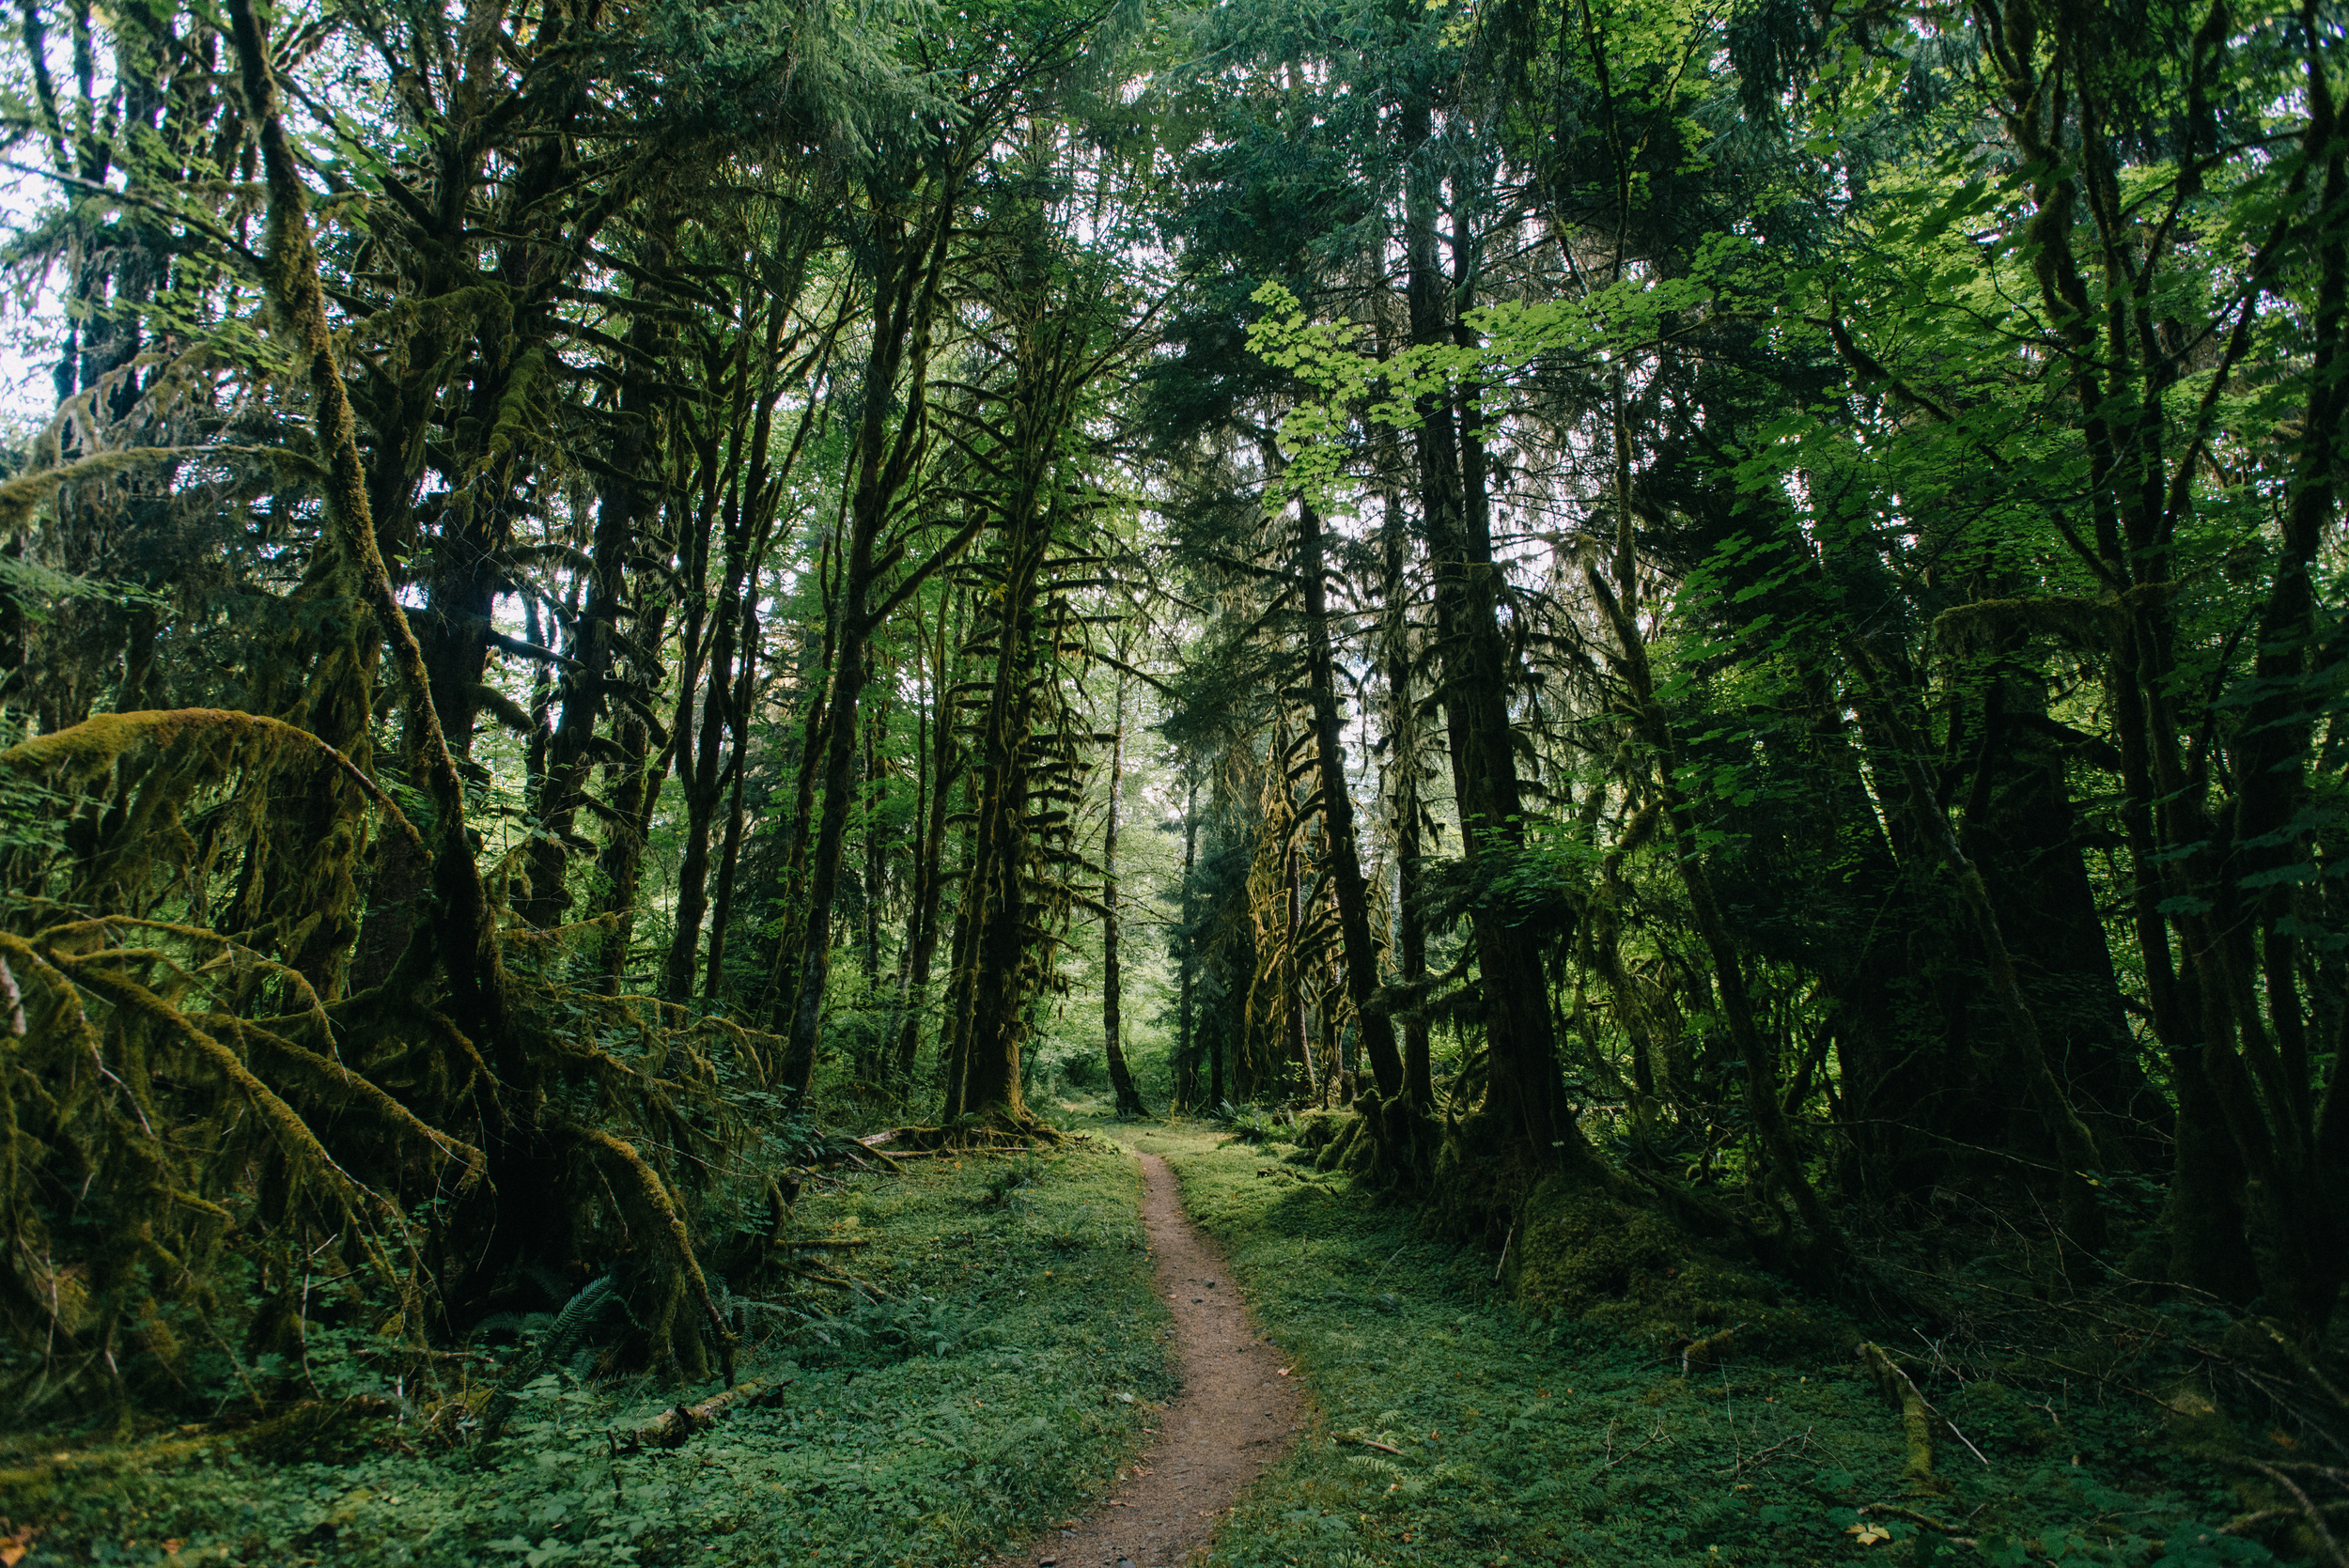 I spent 3 days alone in the HOH Rainforest and walked 37 miles in and out to Blue Glacier, August 2015